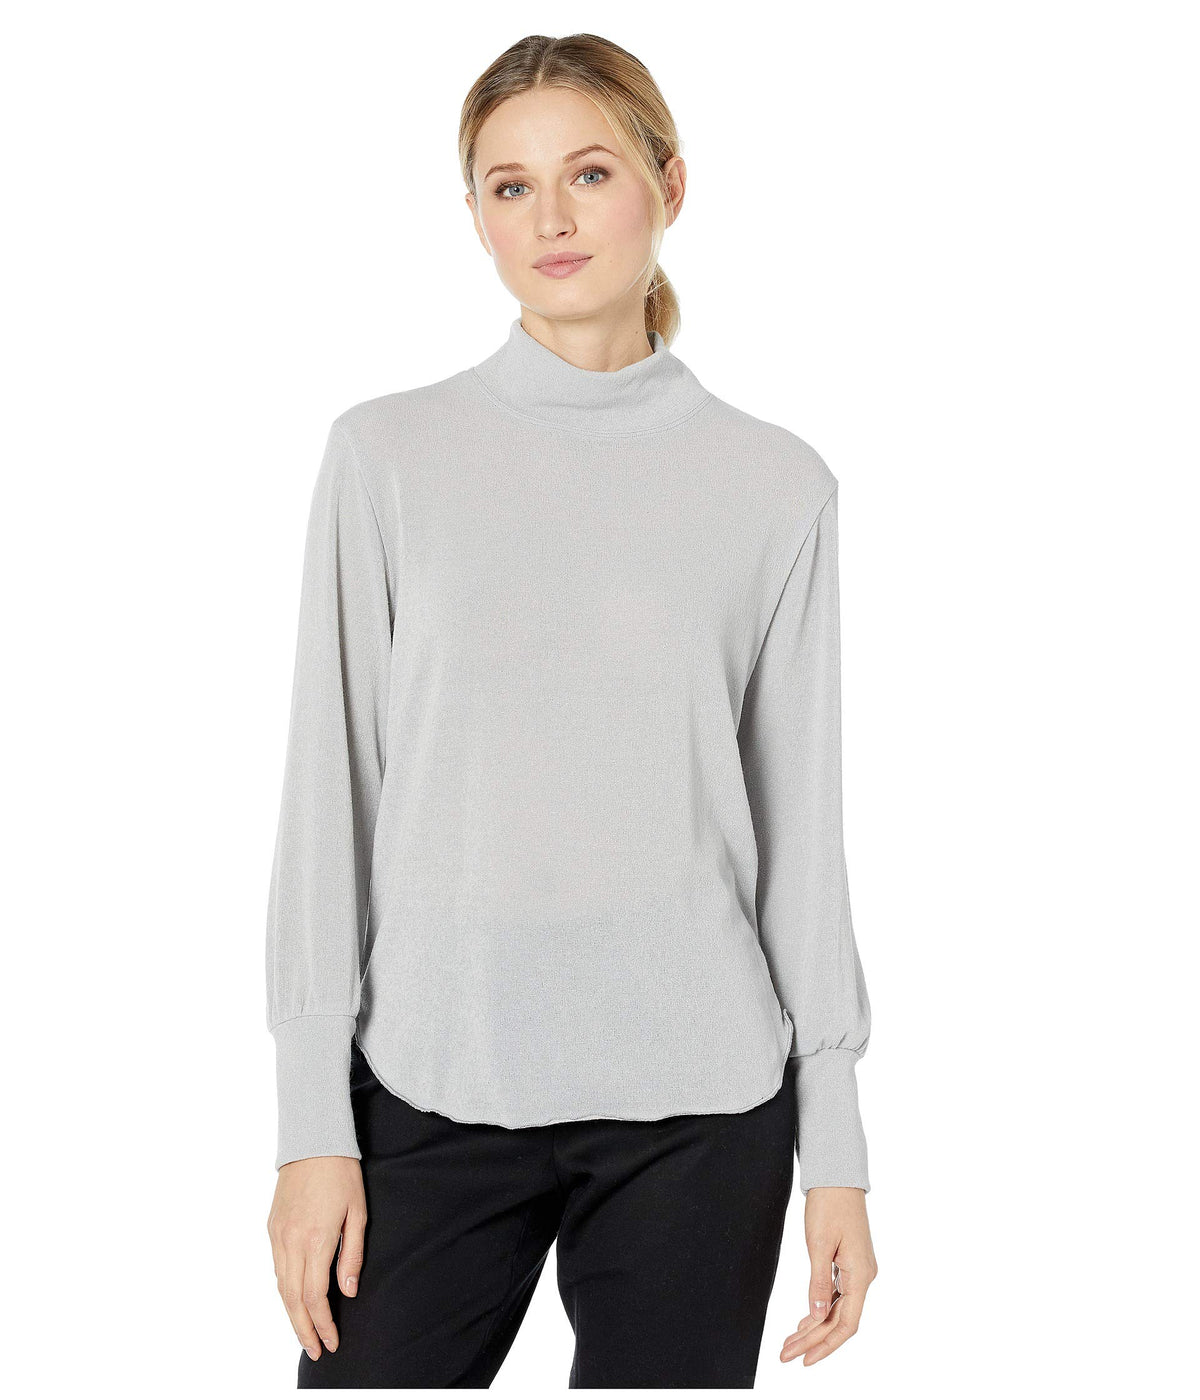 Cuff Sleeve Sweater Top